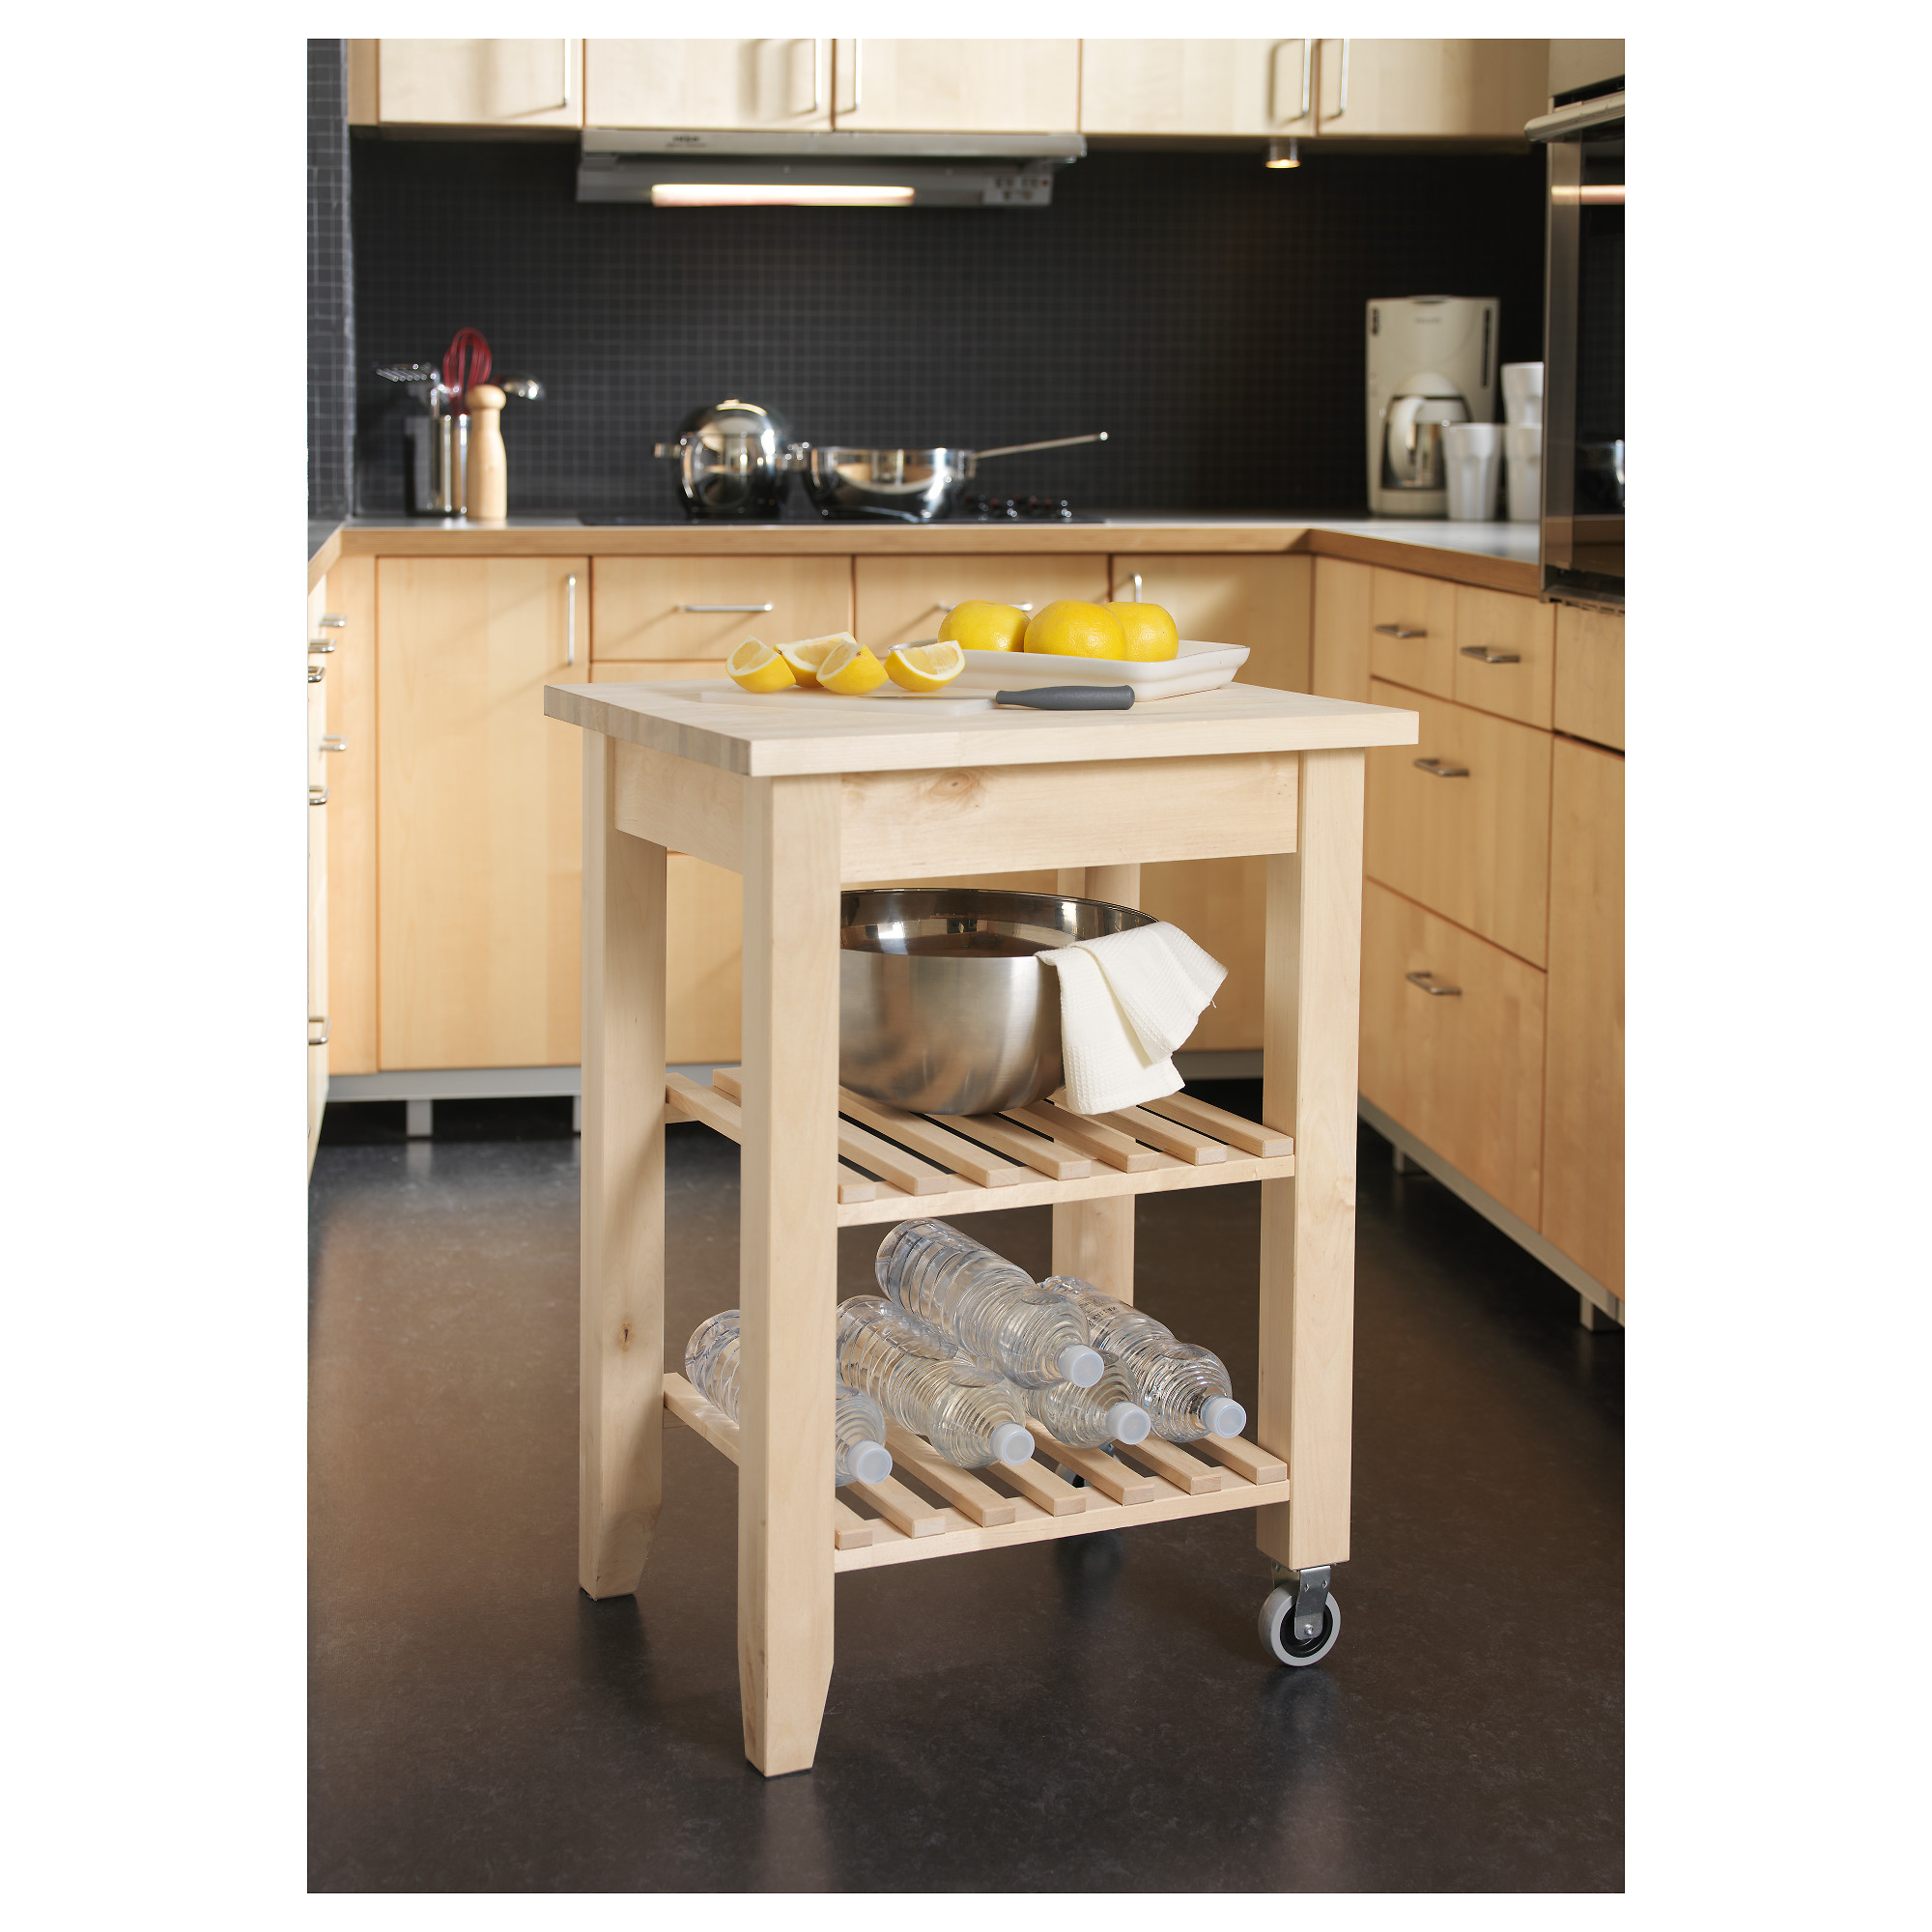 Ikea Kitchen Cart: Wish You Had More Space In Your Home? Well Then You Have